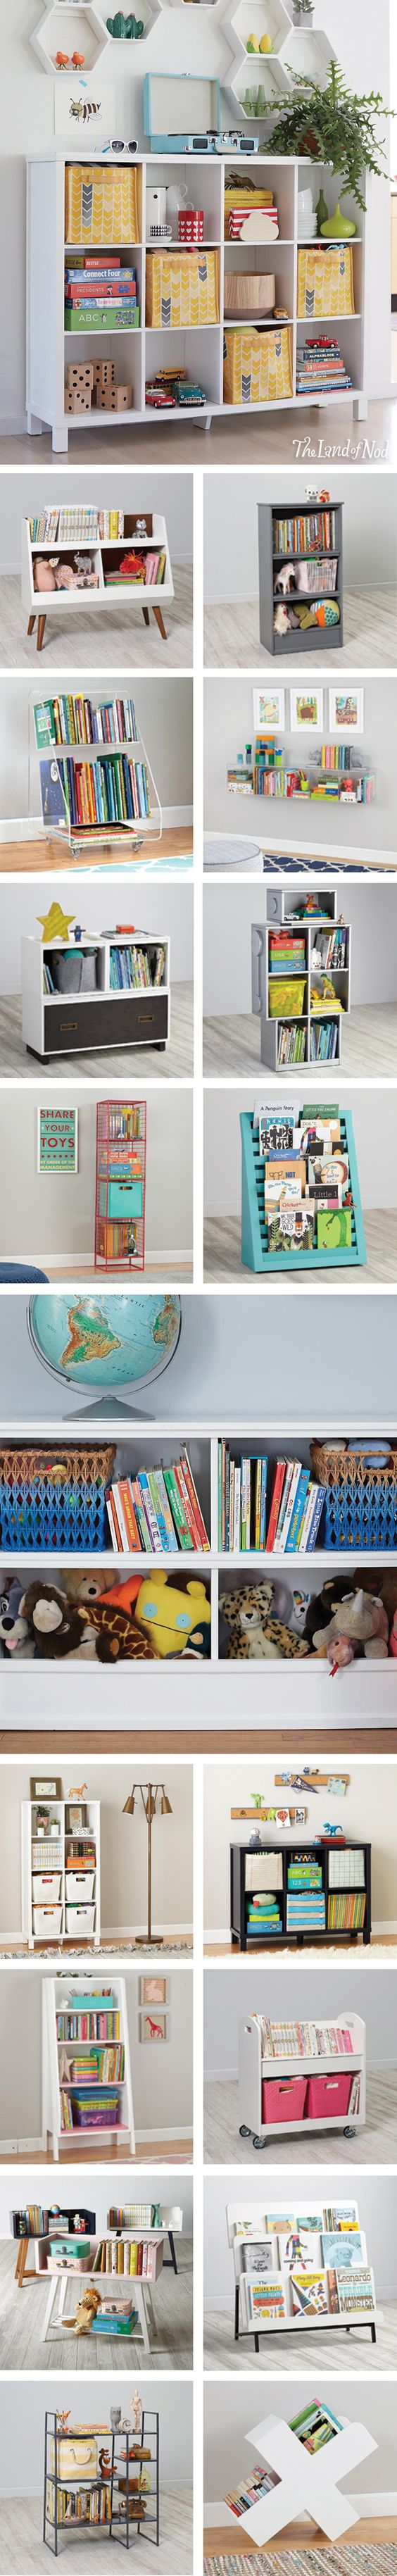 Pinterest the world s catalog of ideas Land of nod playroom ideas